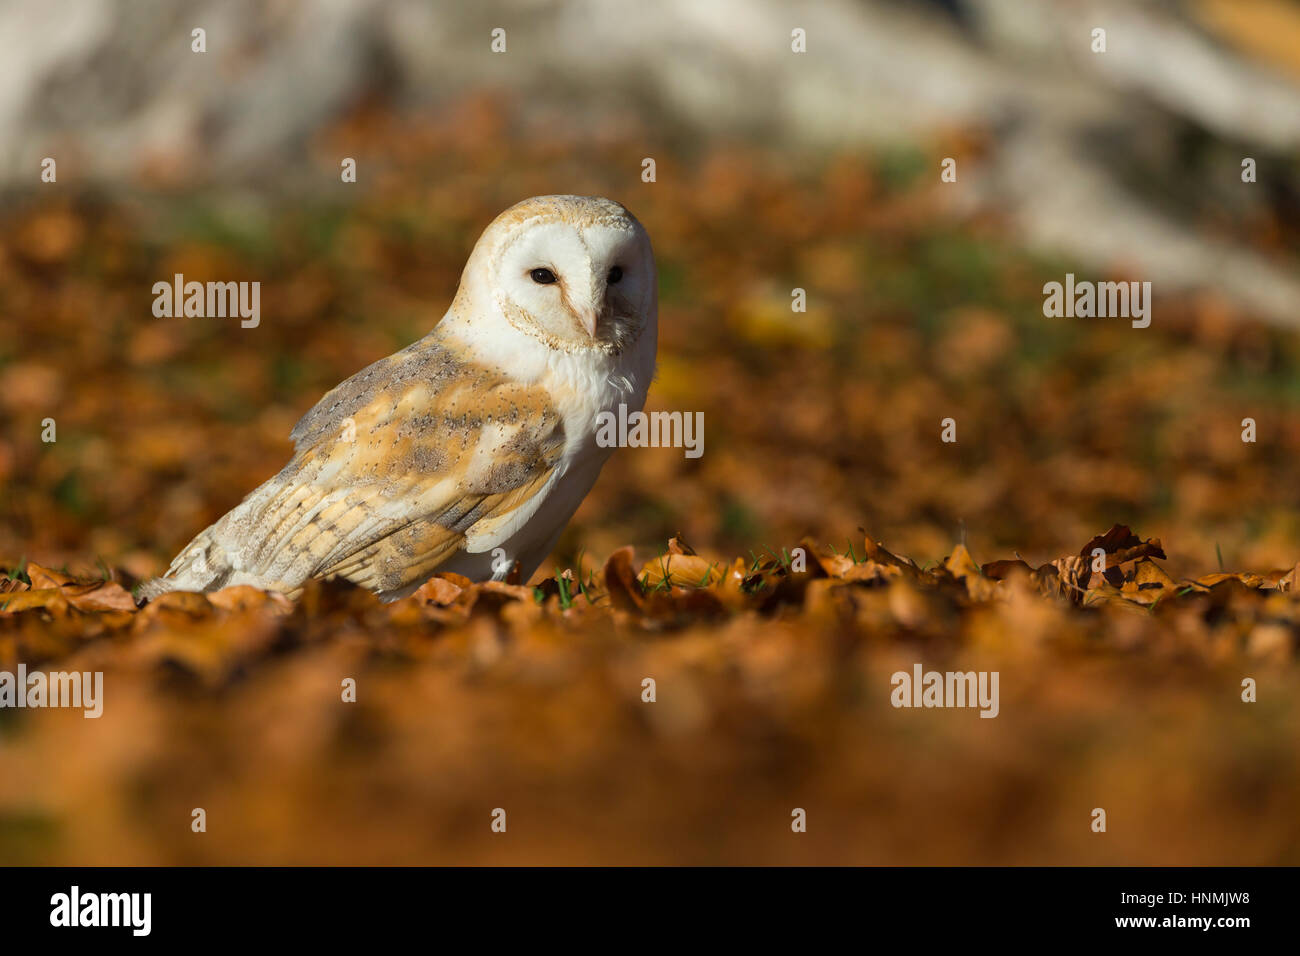 Barn owl Tyto alba (captive), adult female, resting amongst beech leaves, Hawk Conservancy Trust, Hampshire, UK - Stock Image